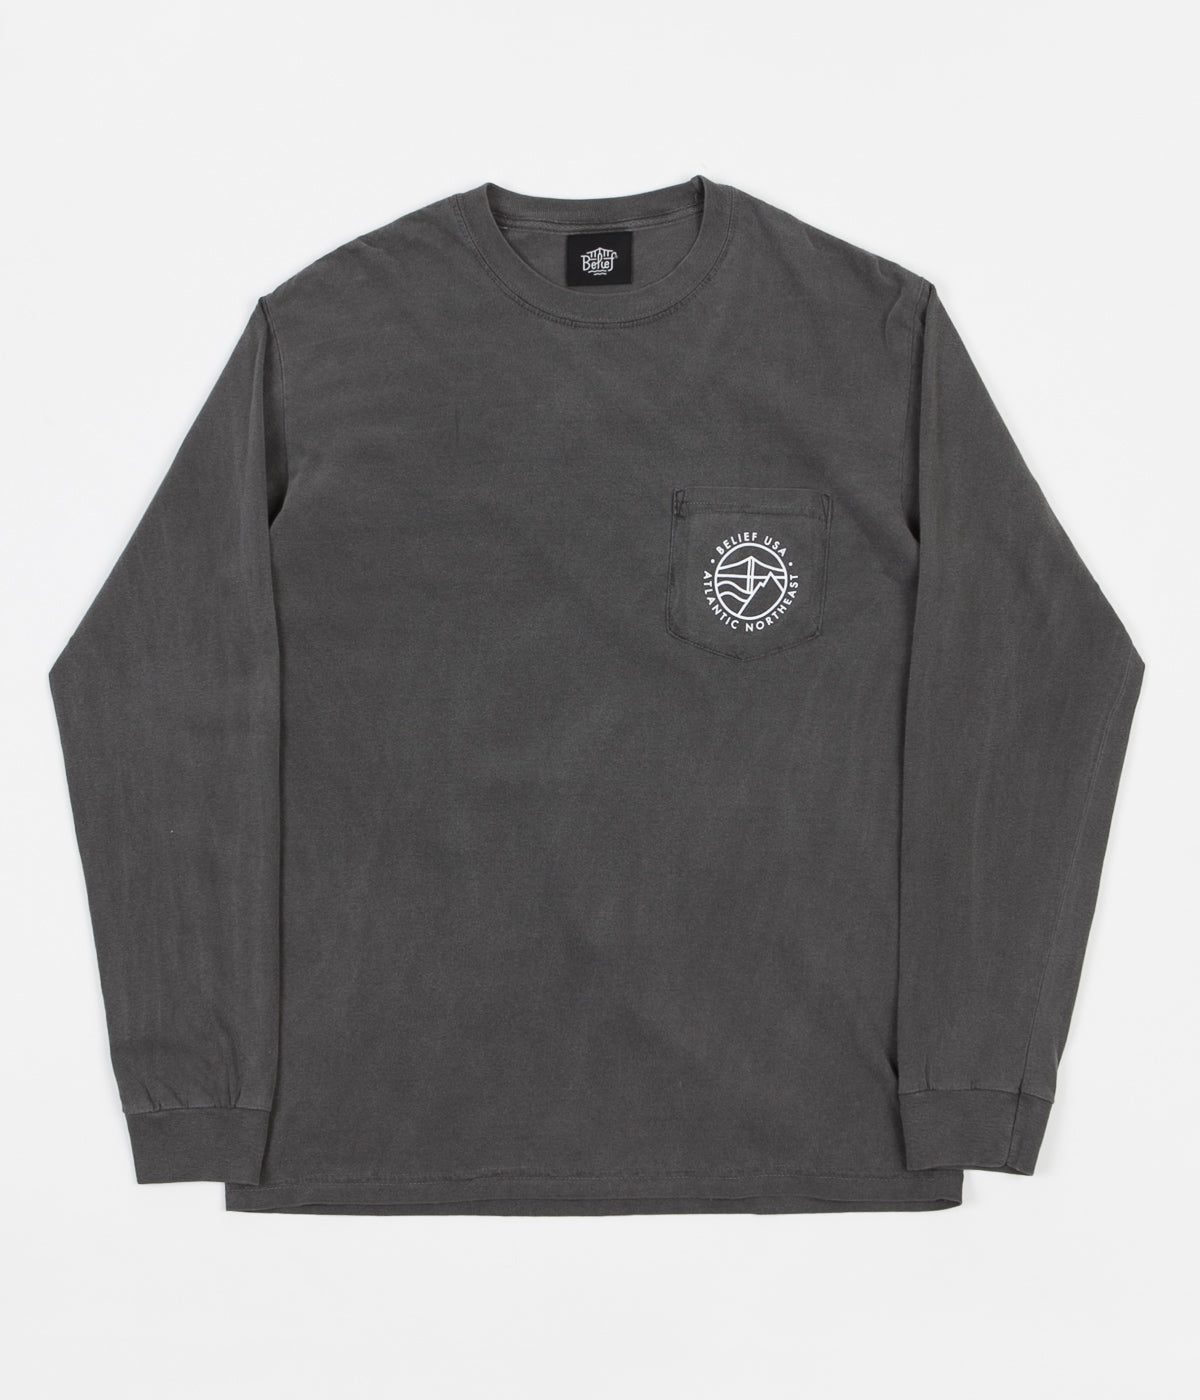 Belief Atlantic Long Sleeve Pocket T-Shirt - Pepper